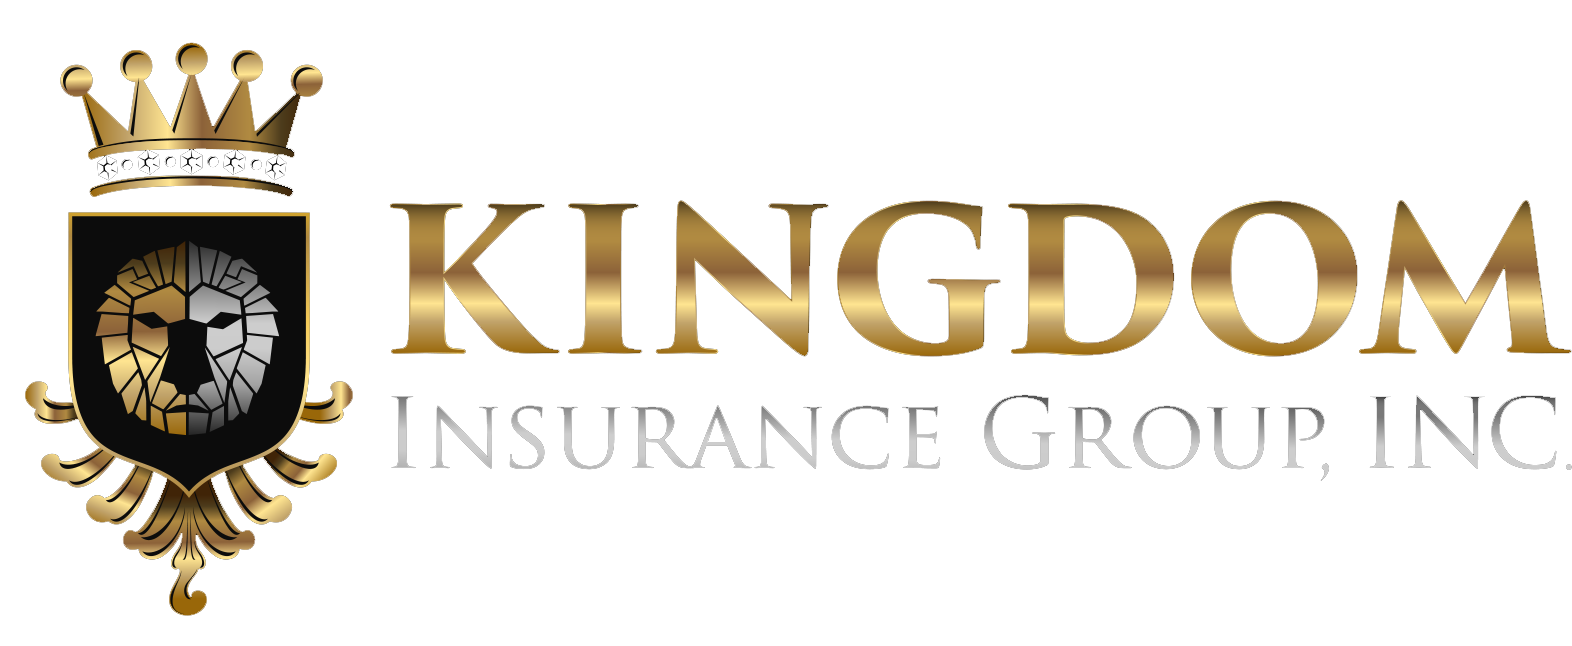 Kingdom Insurance Group Omaha: Auto, Home, Life, Financial